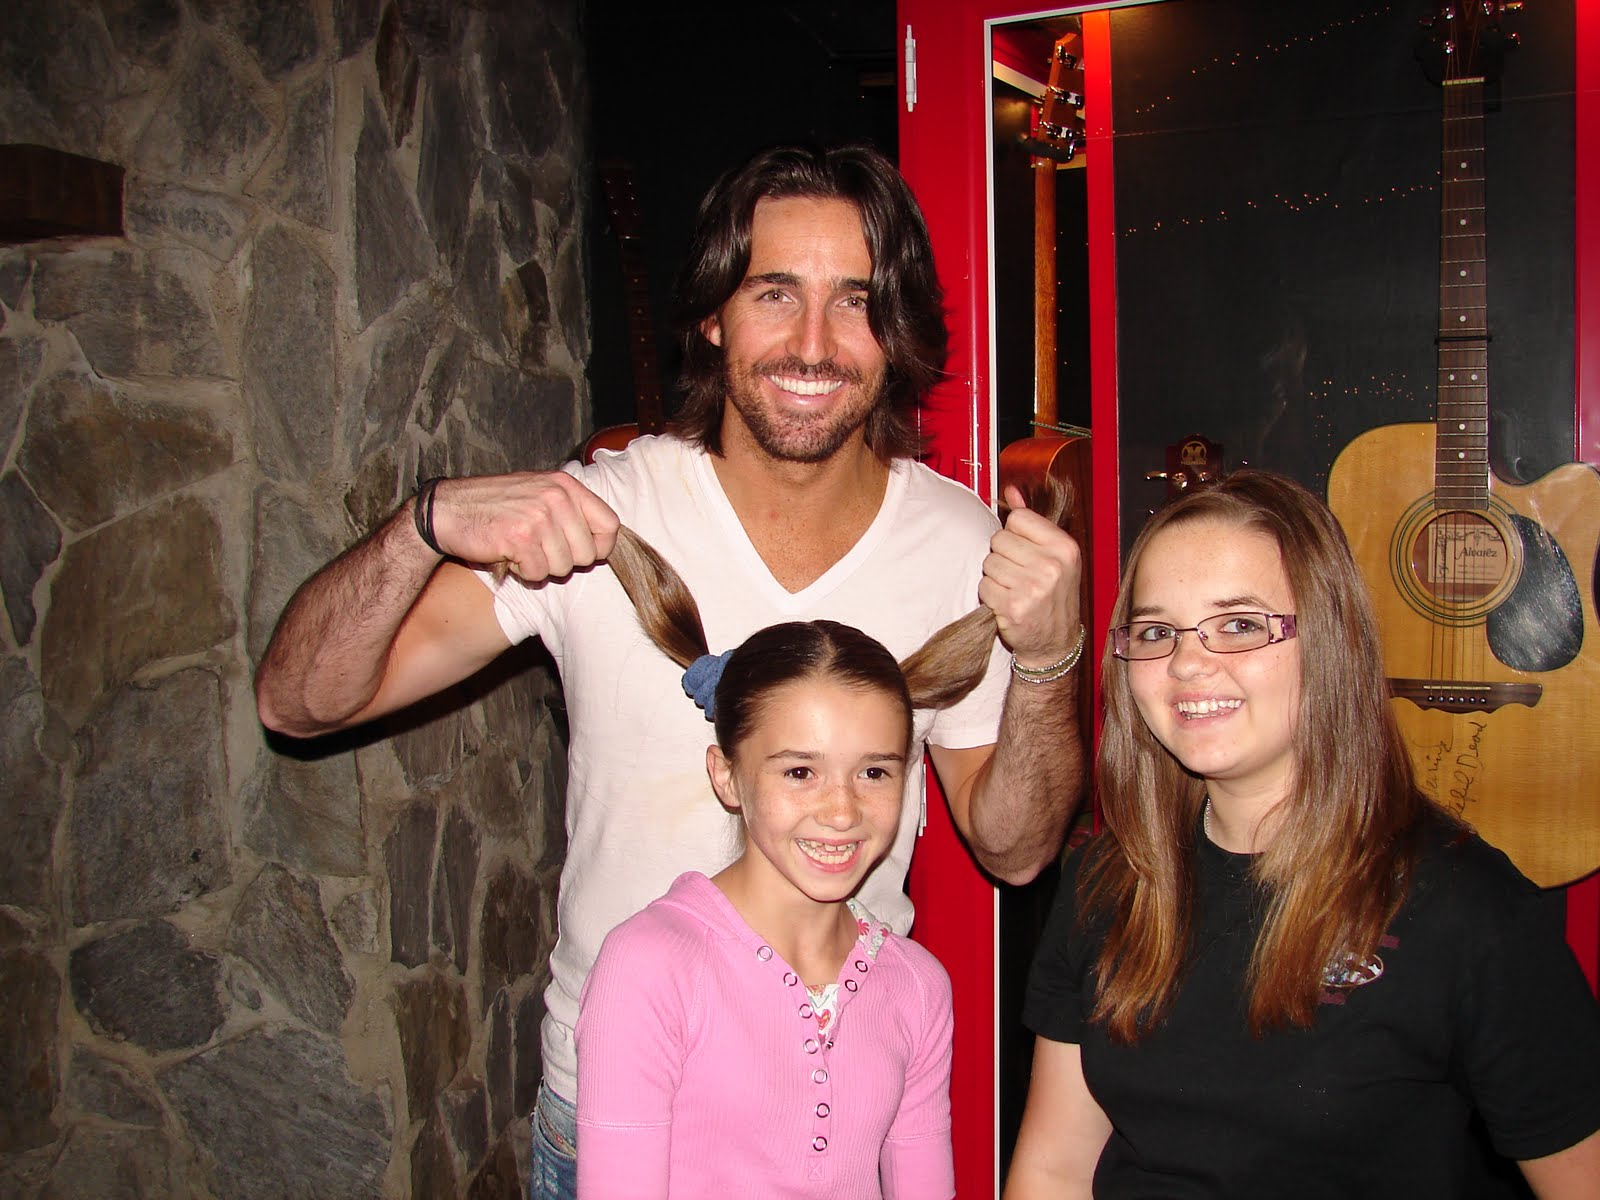 All american jess jake owen and partners in hope standard meet and greet hes got the mg face down pat lol however he broke form for this one he thought the little girls pigtails were cute m4hsunfo